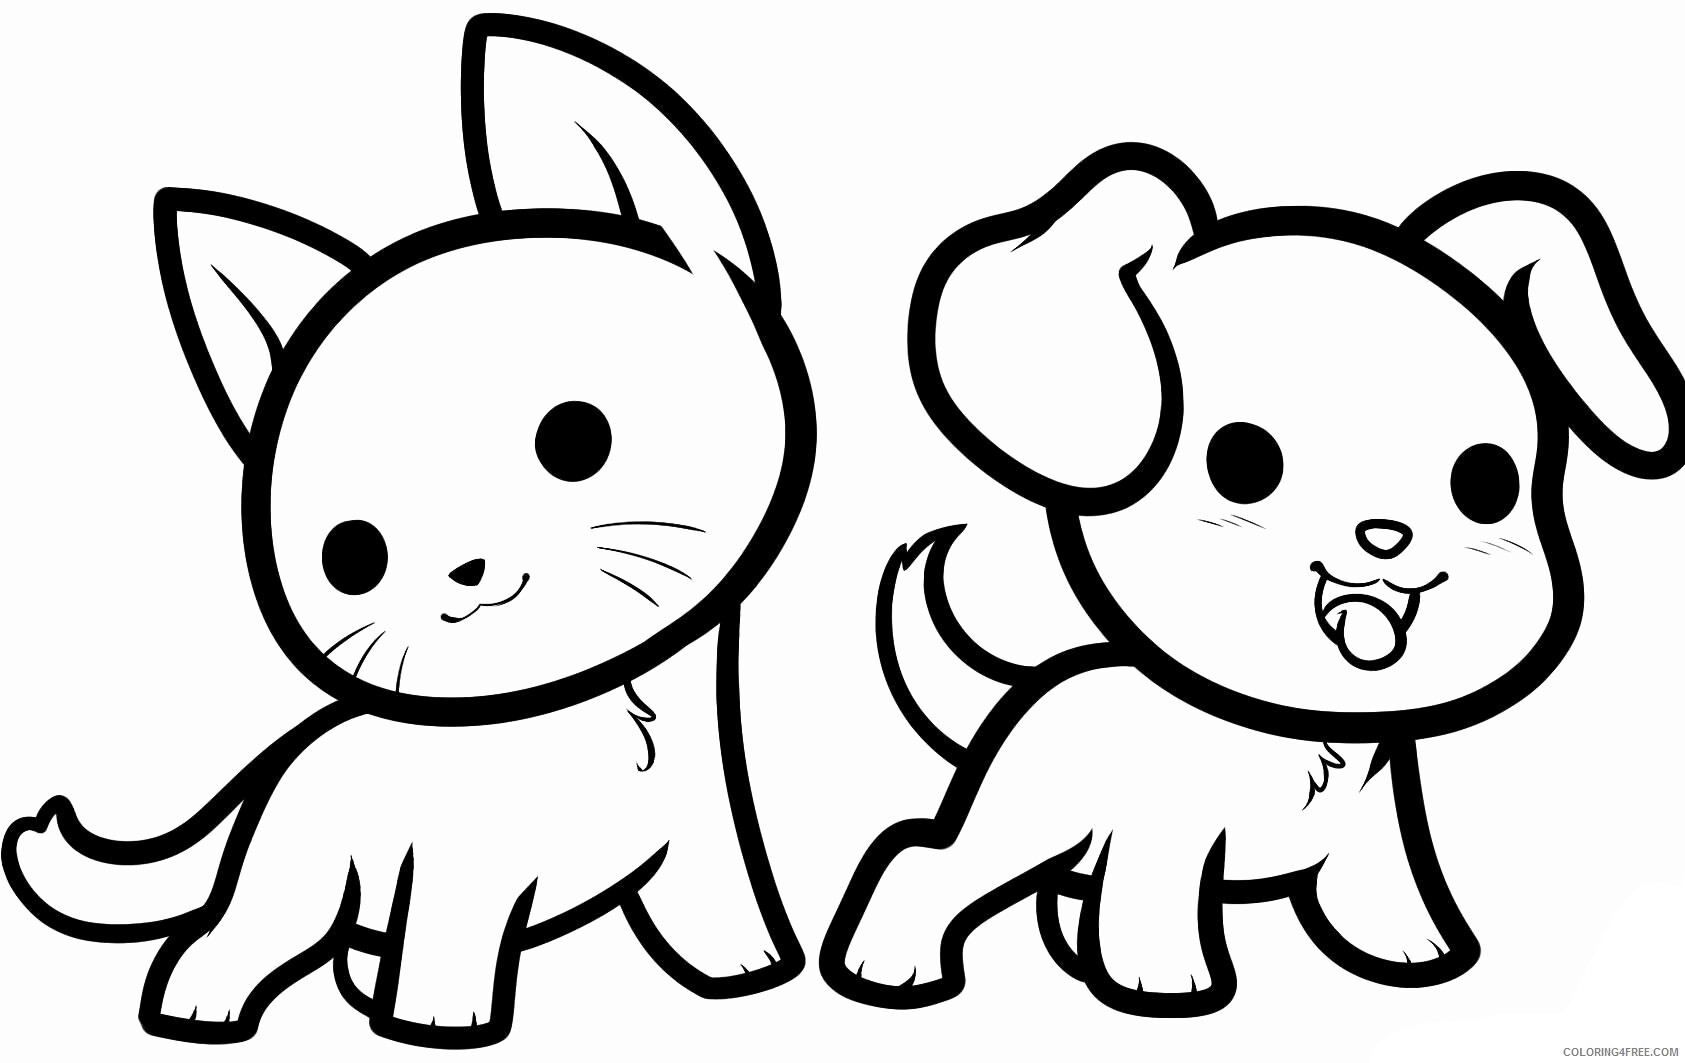 Cat Coloring Pages Animal Printable Sheets Cute Cat and Dog Animal ...